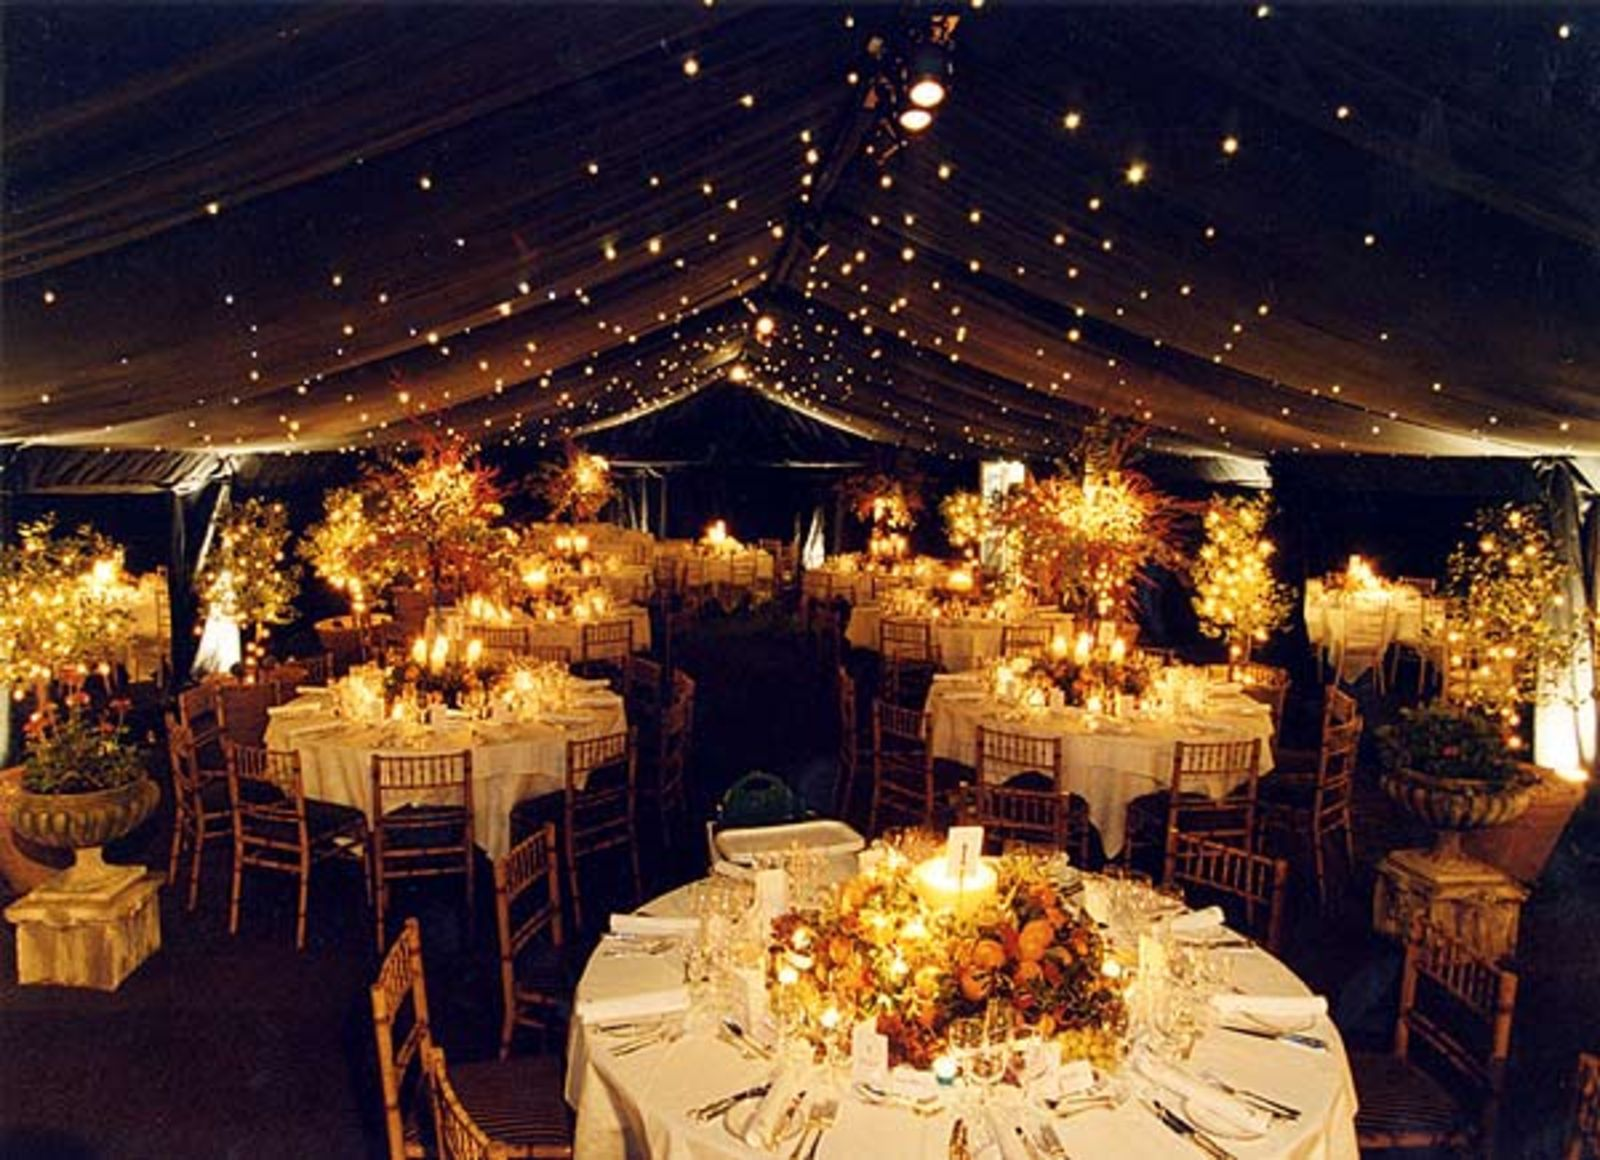 Wedding decorations tulle and lights  Pin by Emely on quincernaira in   Pinterest  Wedding Dream